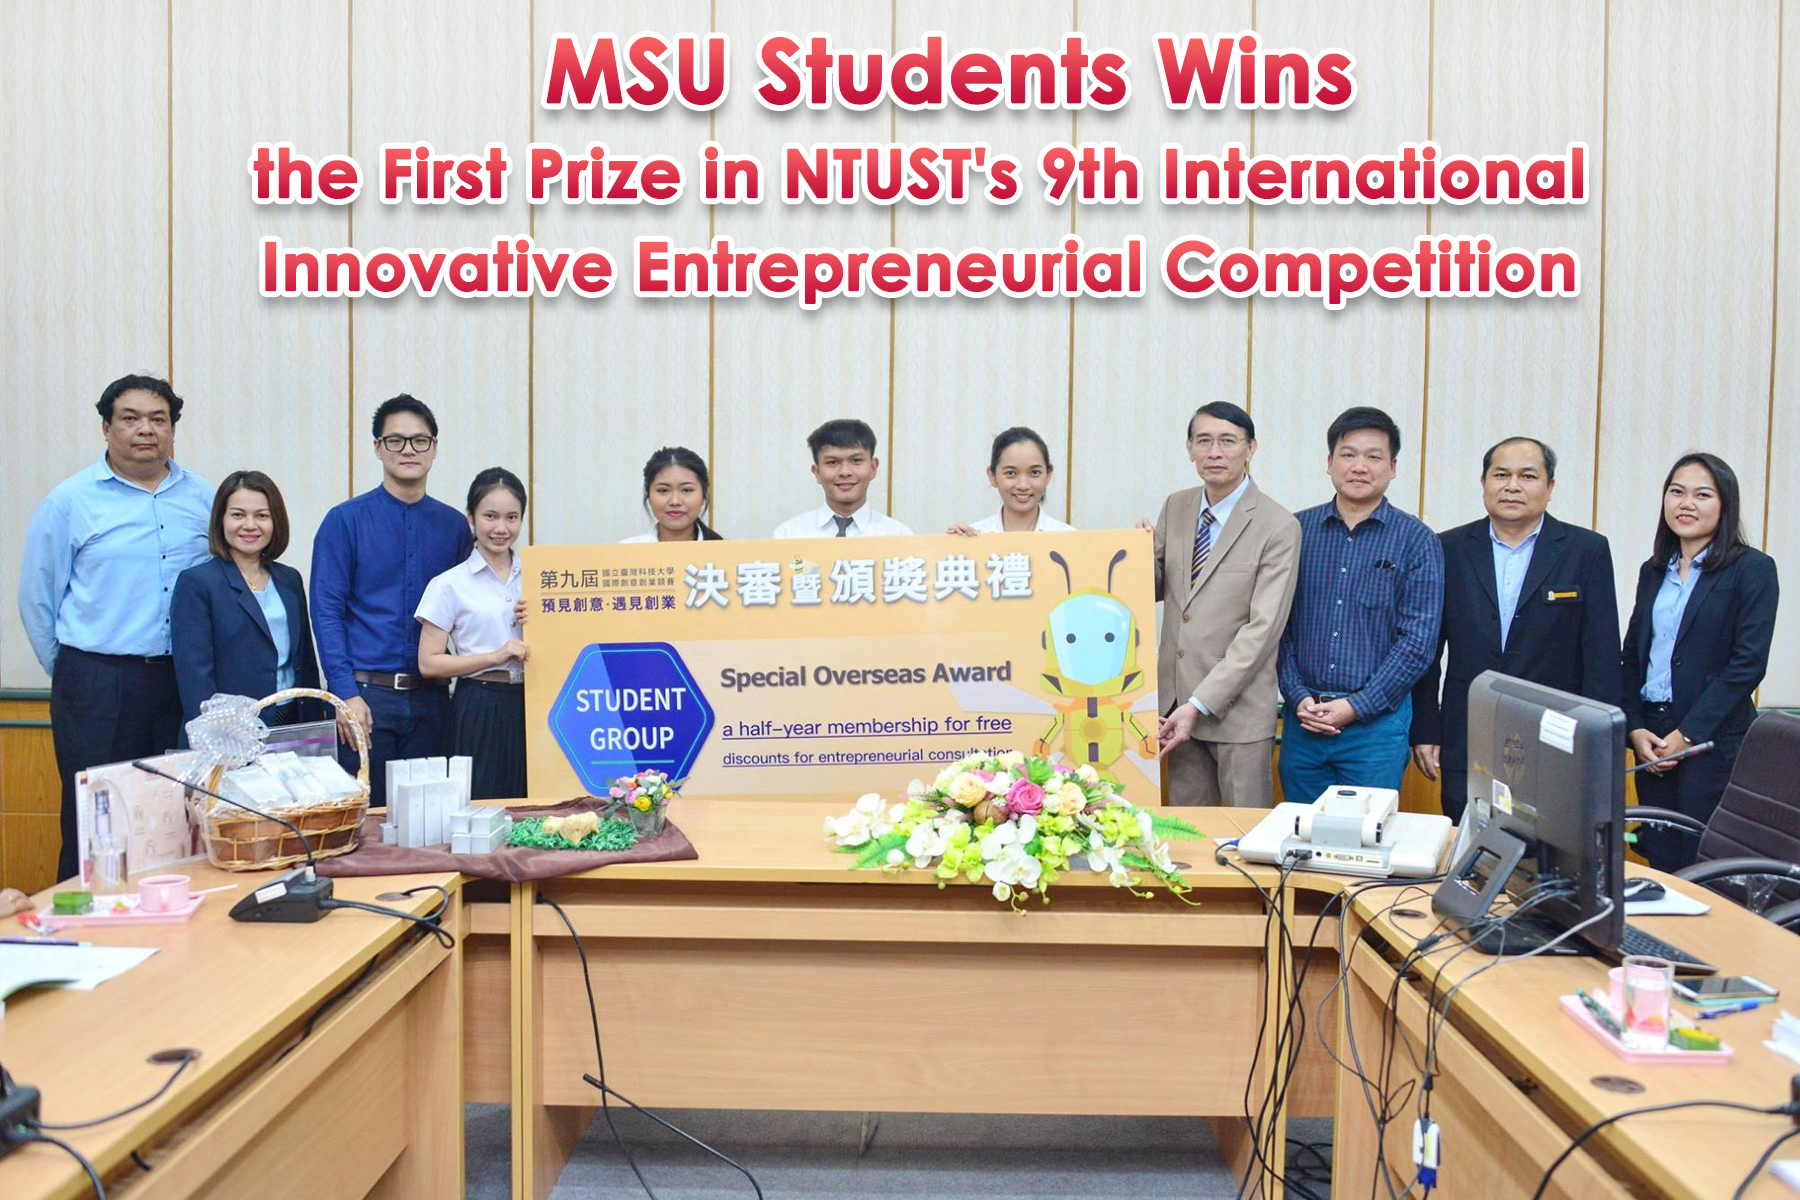 MSU Students Wins the First Prize in NTUST's 9th International Innovative Entrepreneurial Competition